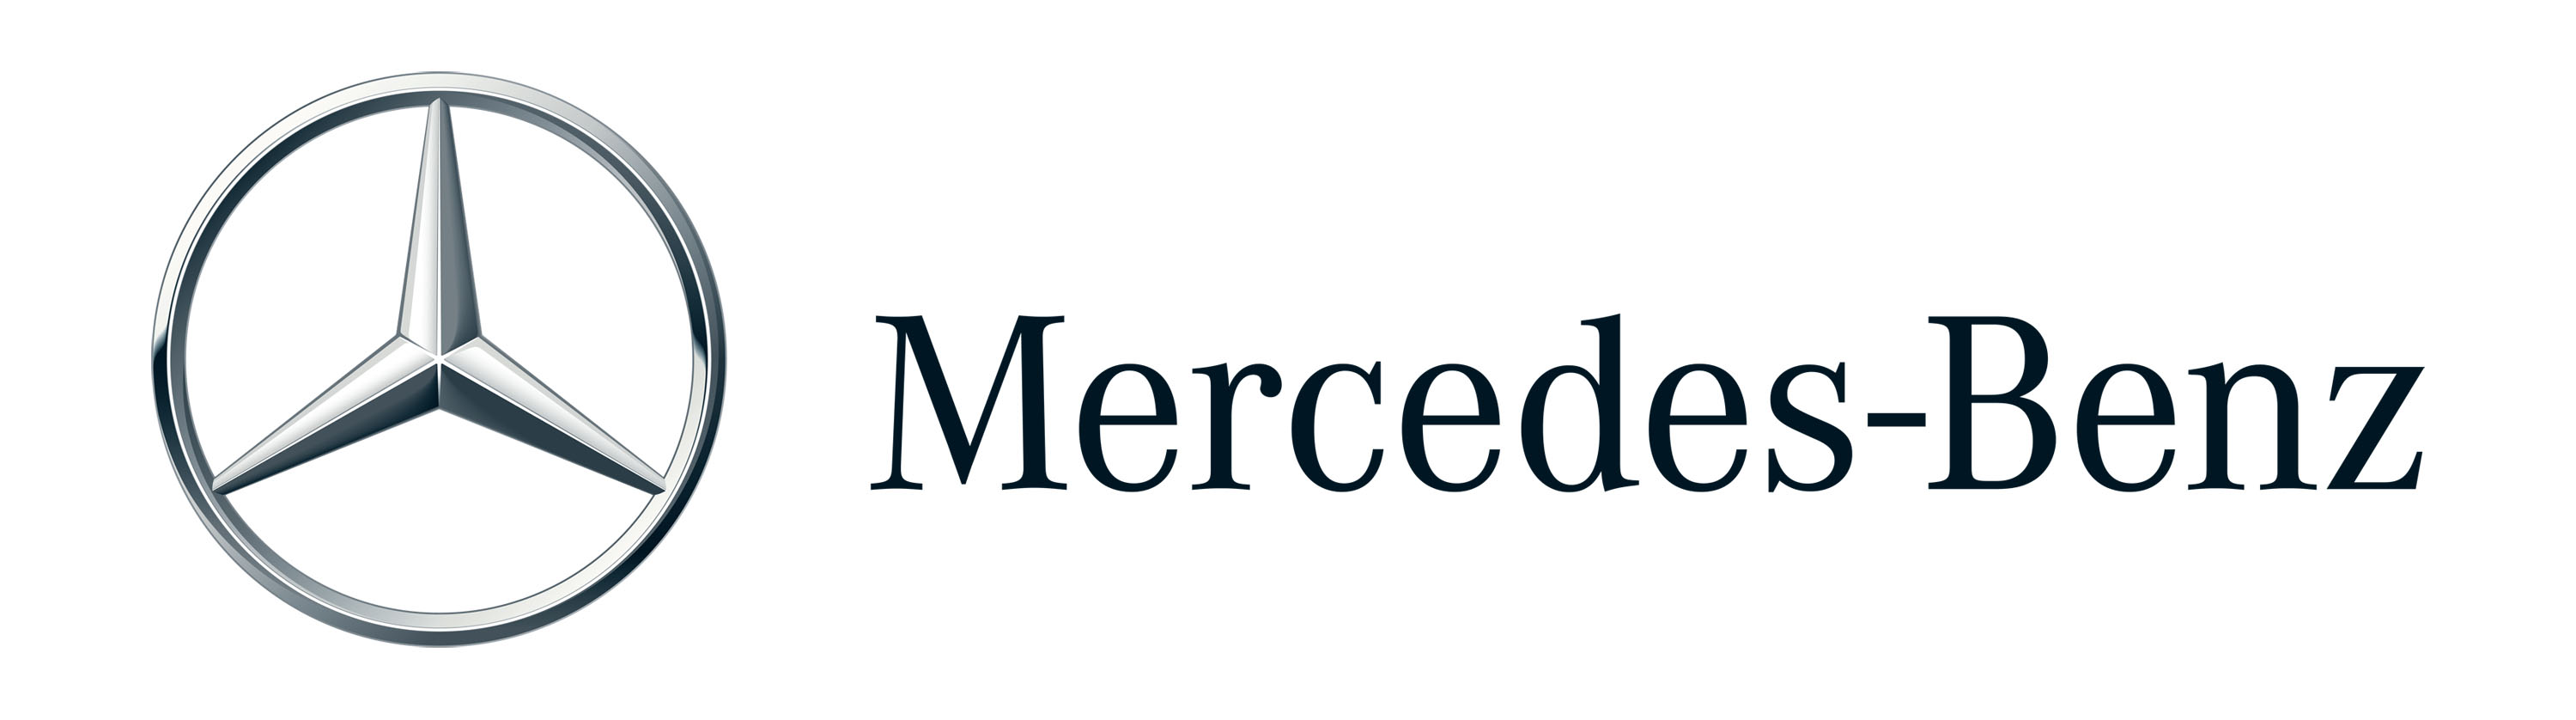 Mercedes benz credit card payment login address for Pay mercedes benz online